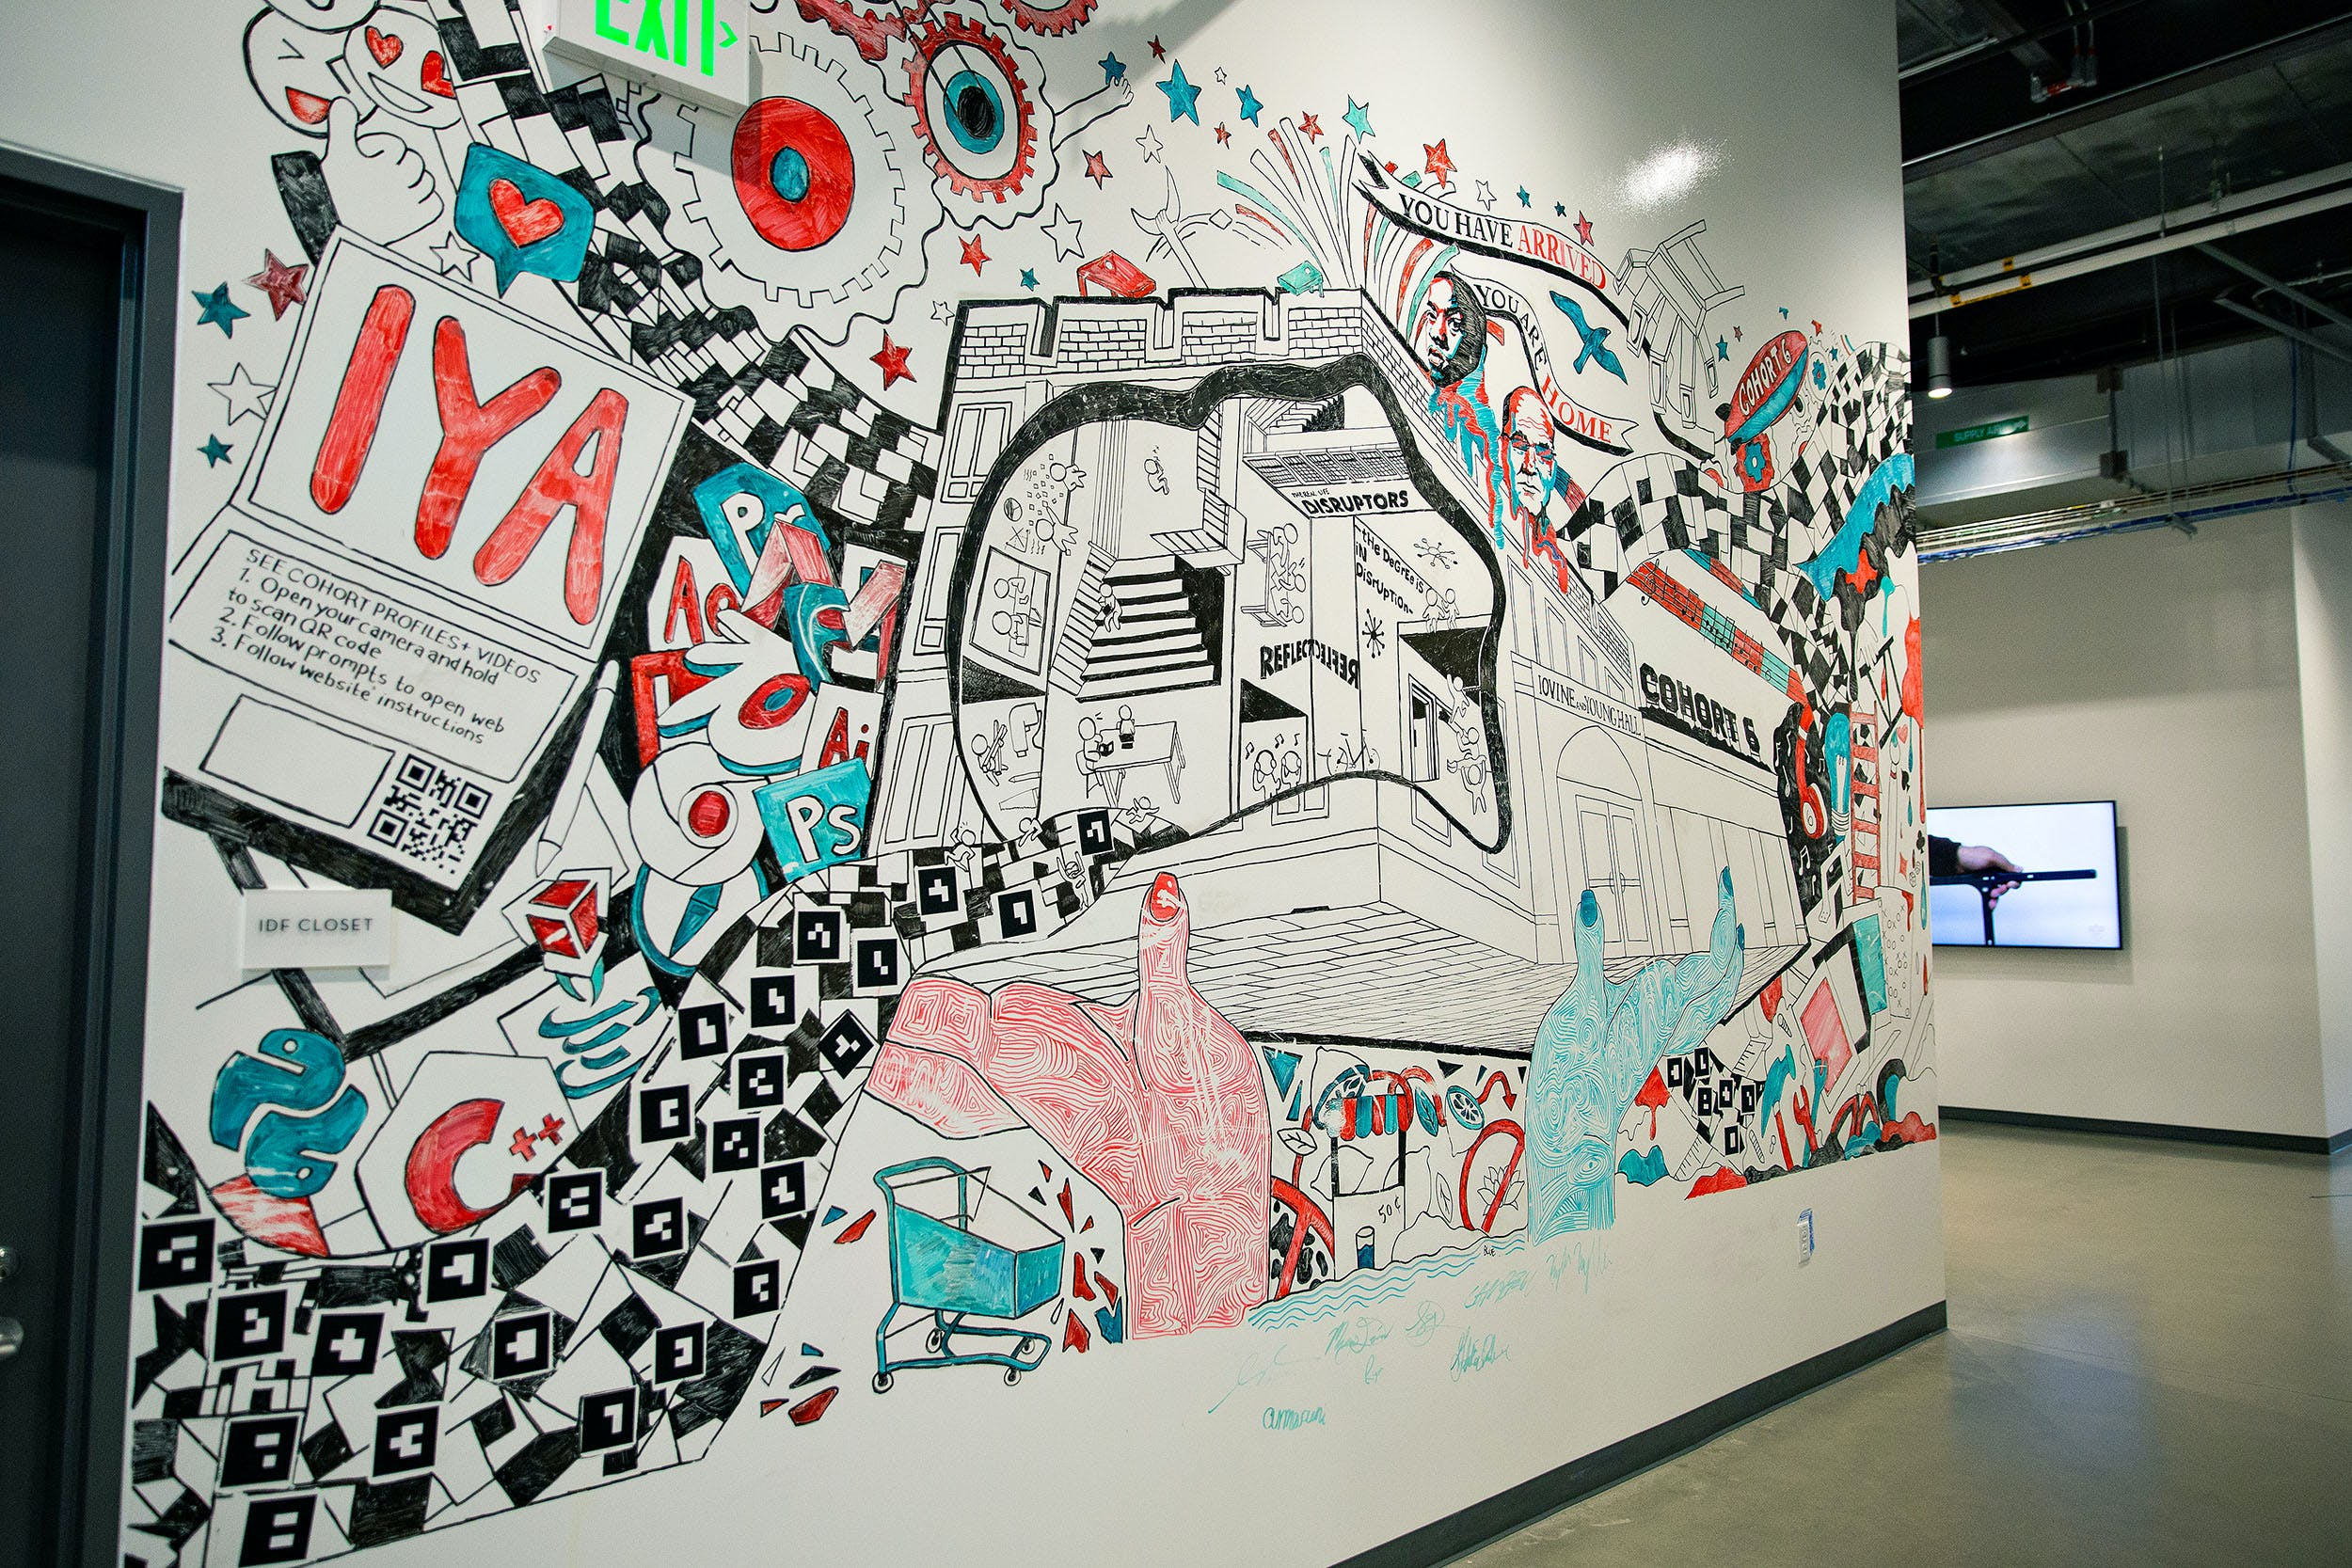 Vibrant mural with a collage of different images in red, black, white and green